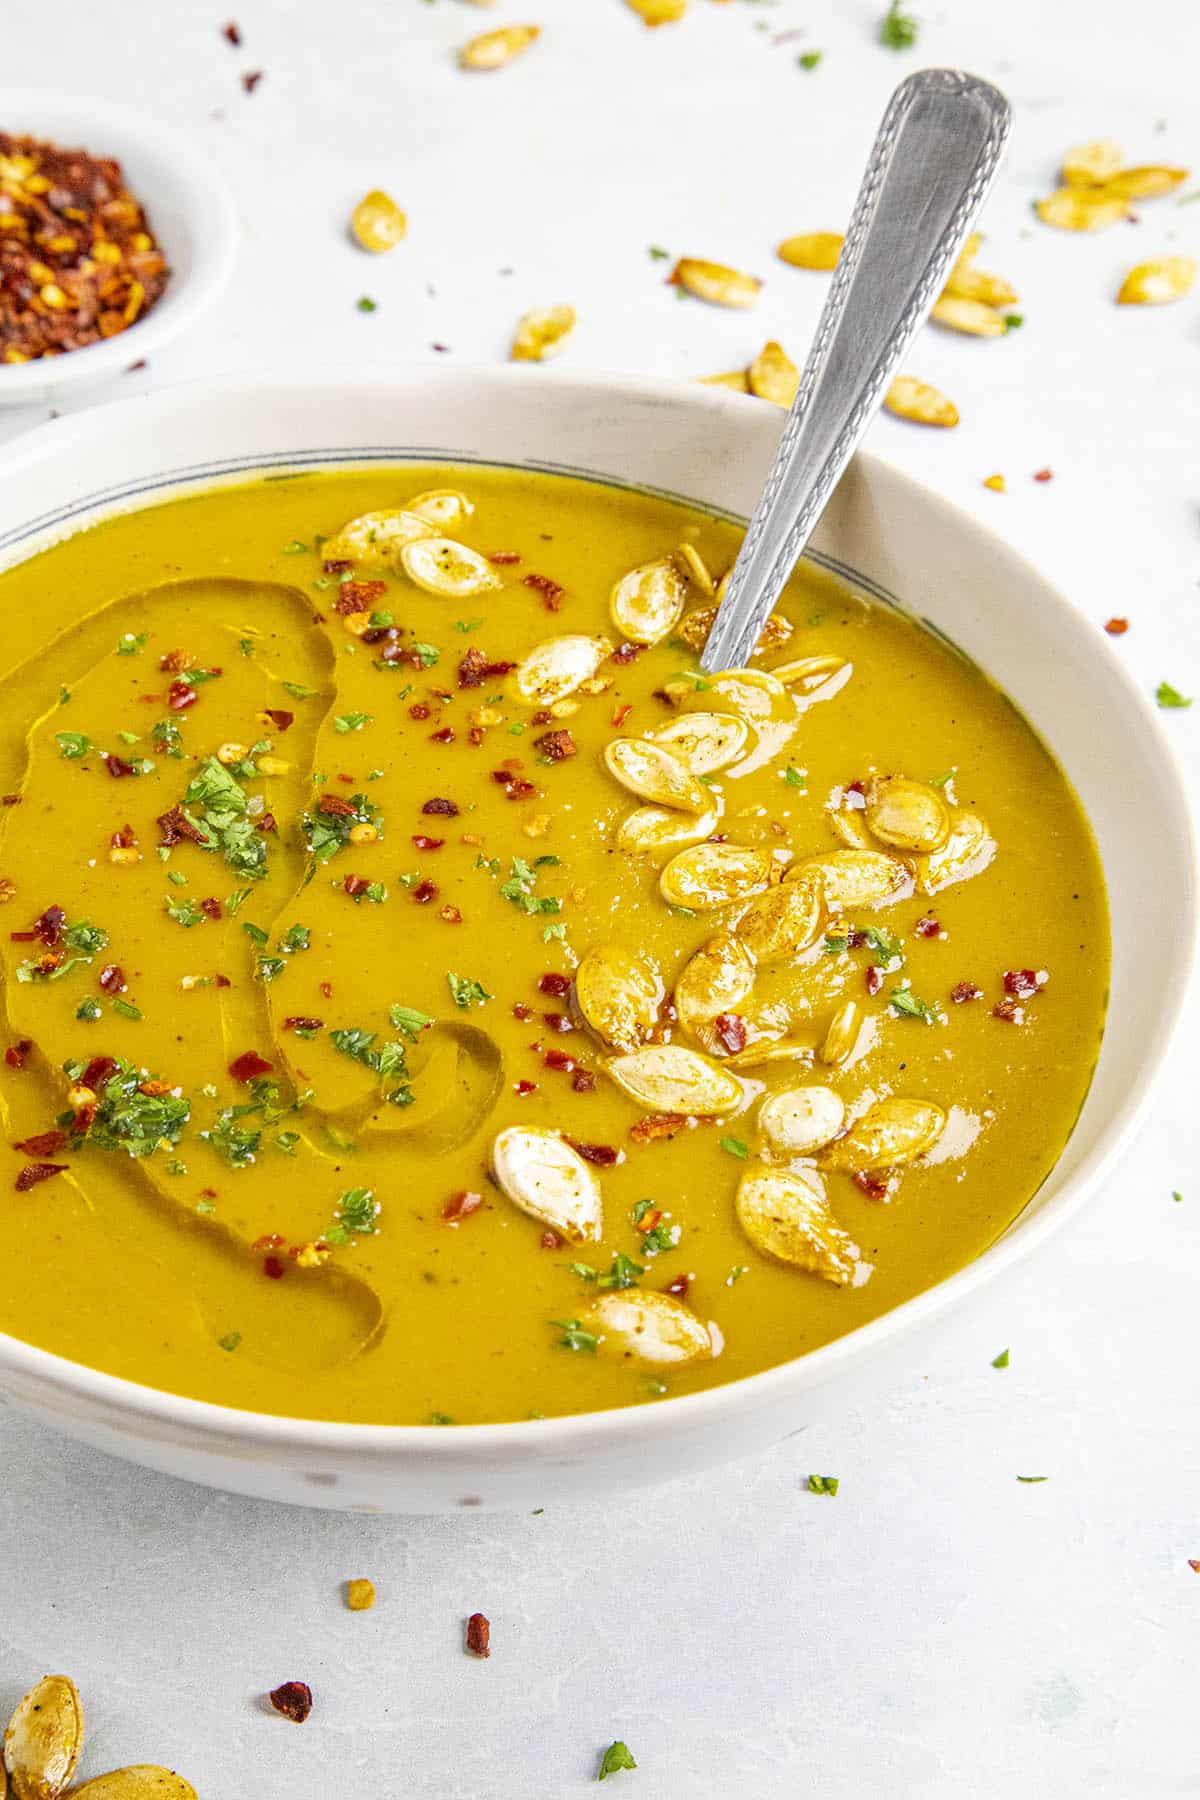 Spicy Pumpkin Soup in a bowl with pumpkin seeds for garnish